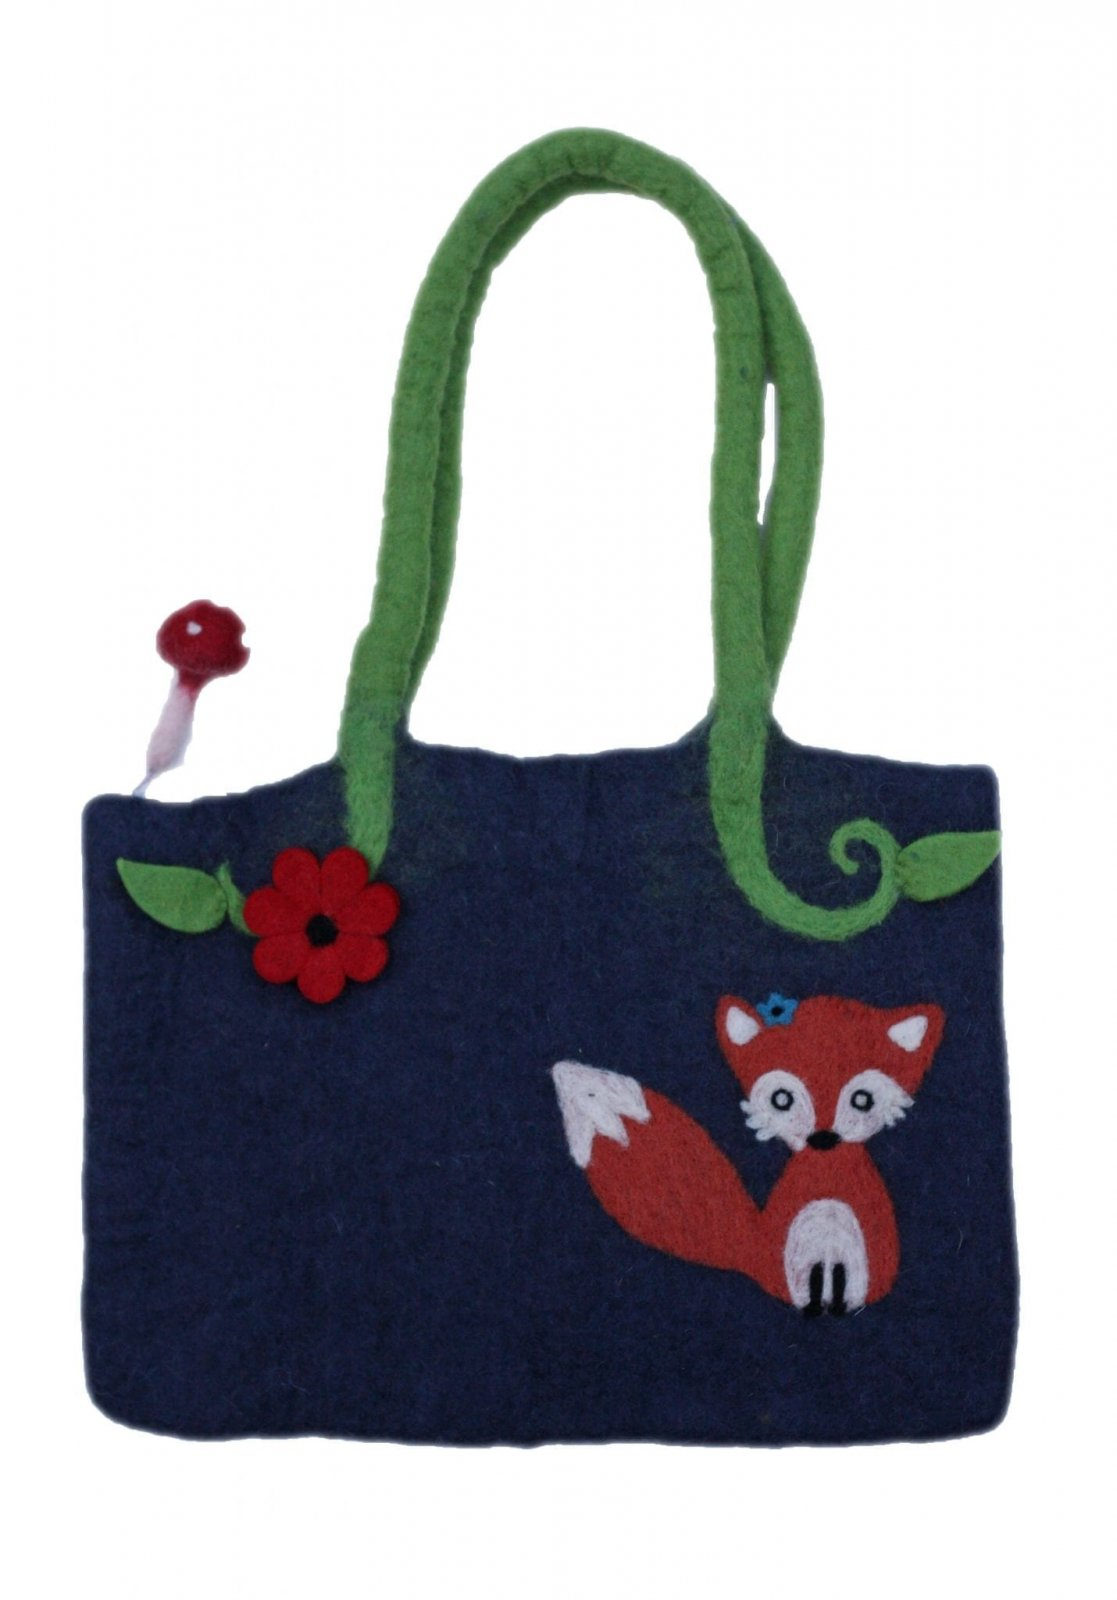 Woodland Friends Knitting Bags